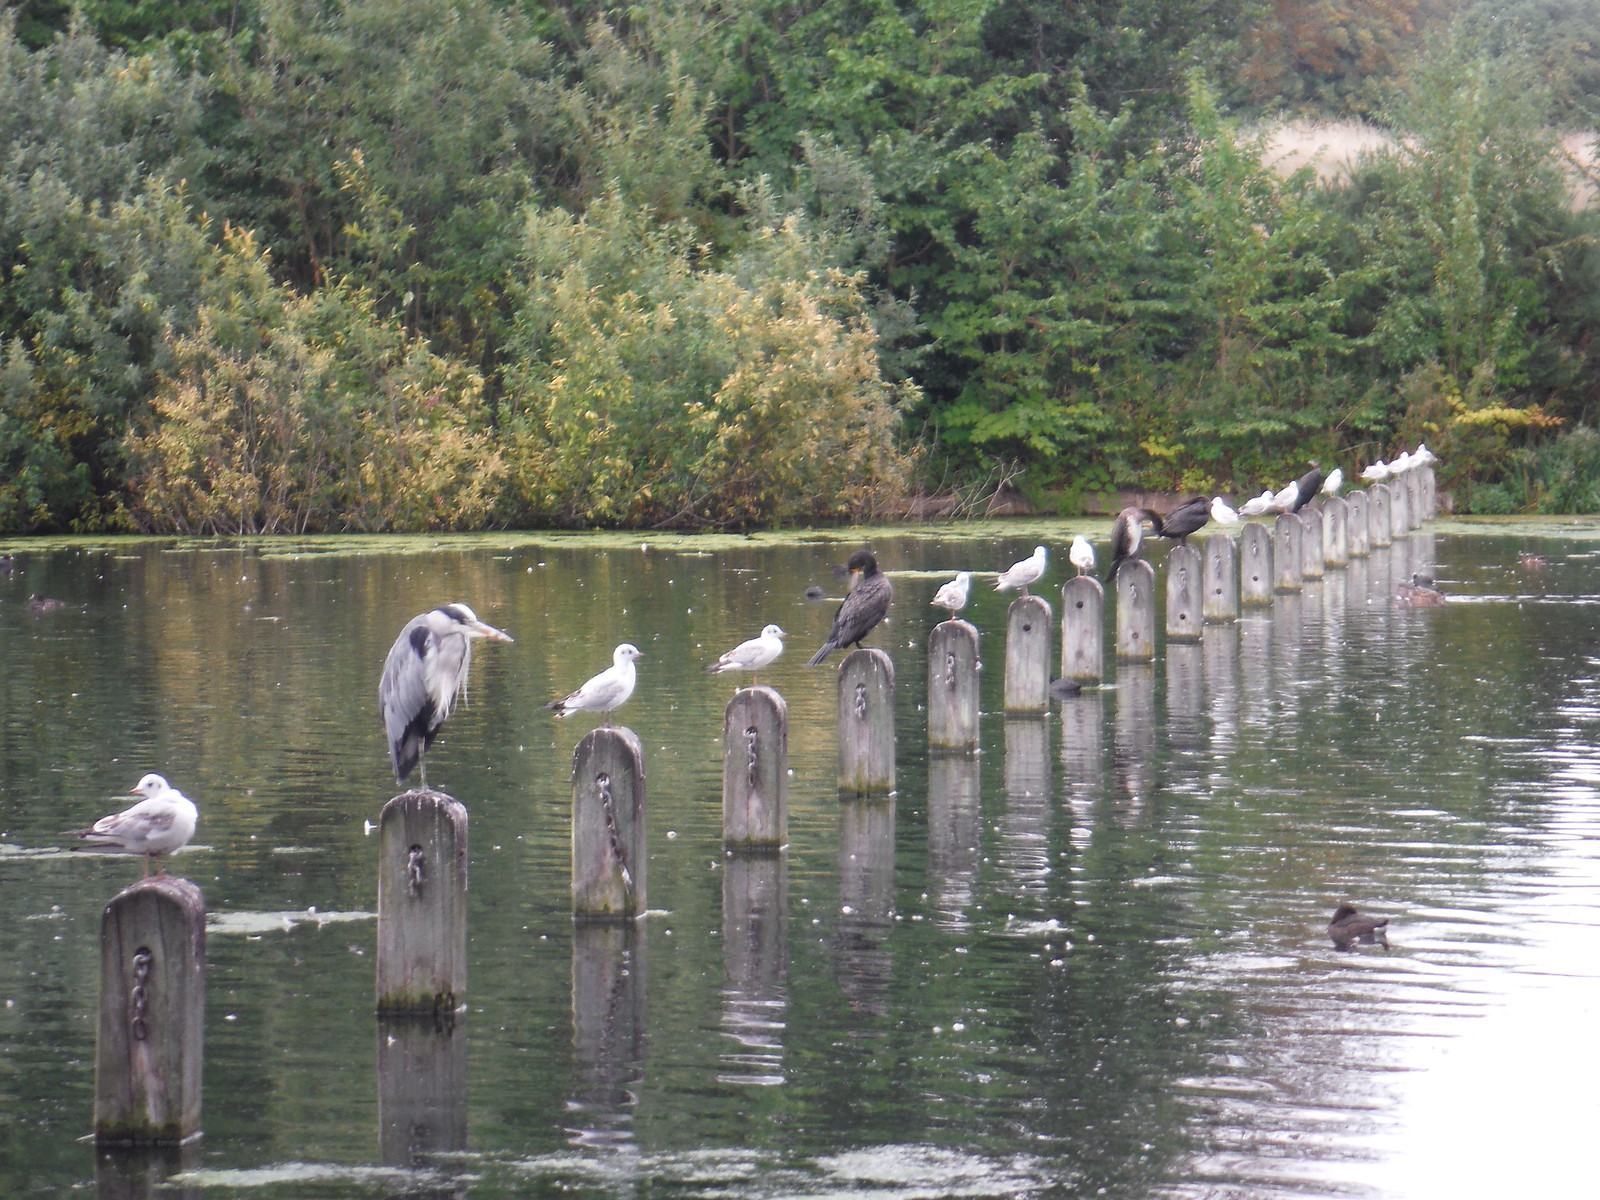 Birds All Lined Up, The Long Water SWC Short Walk 19 - Royal Parks